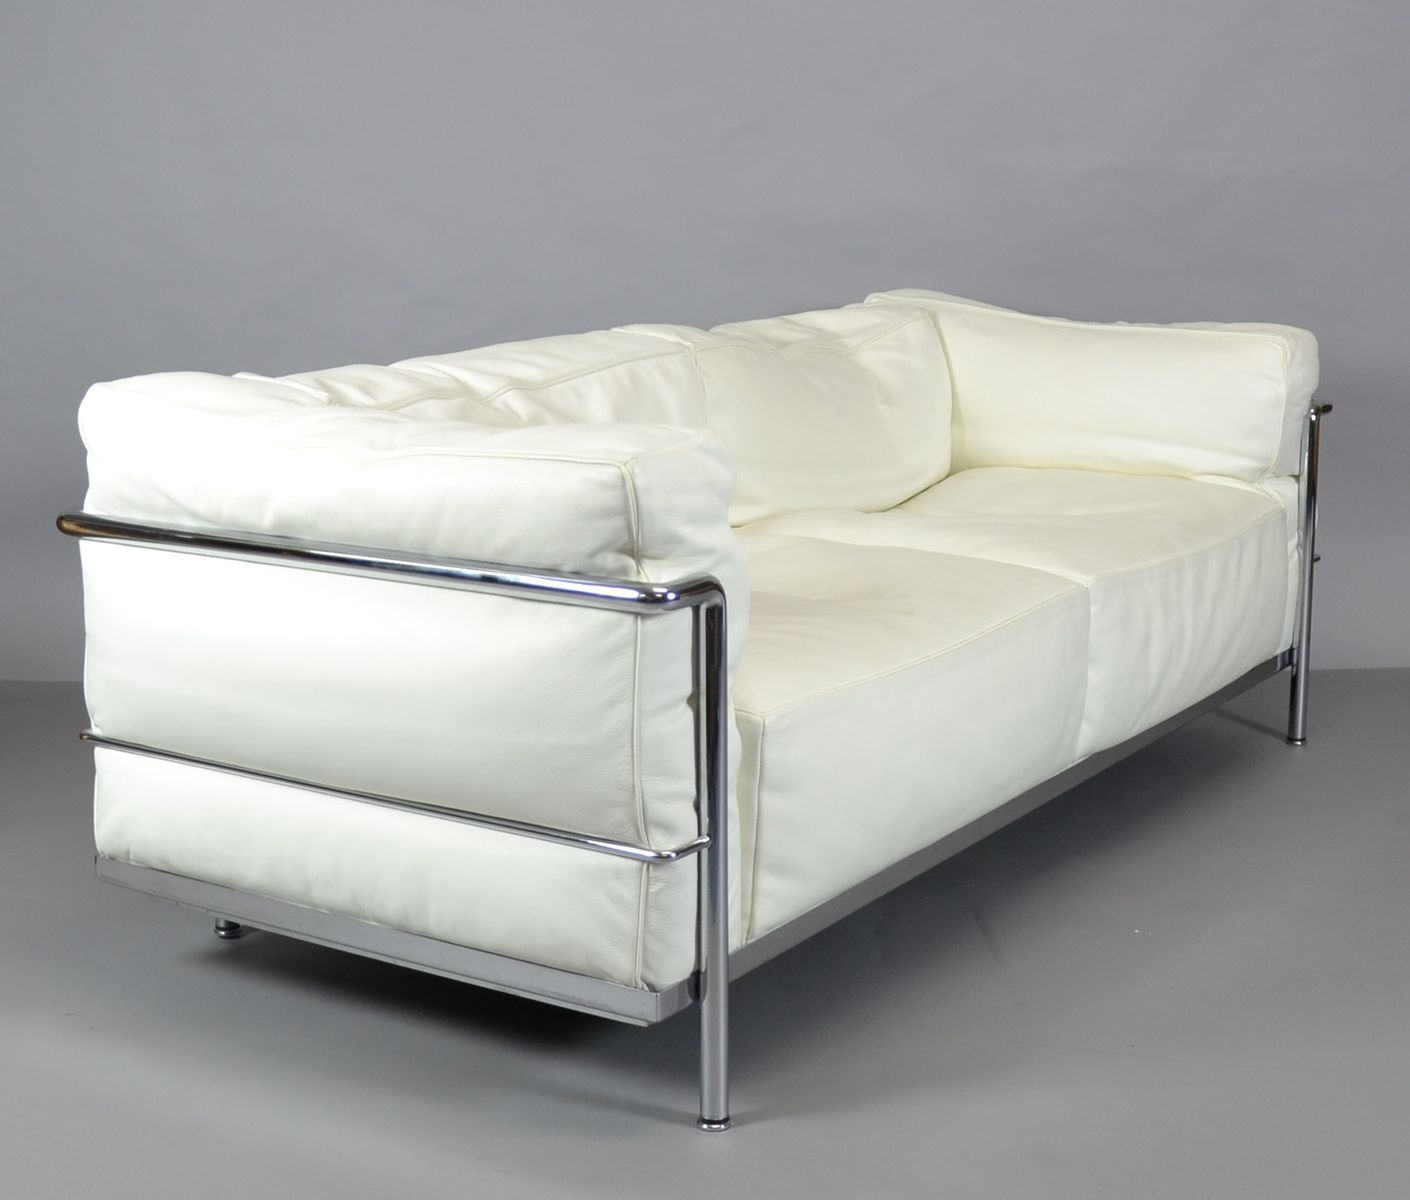 Vintage Lc3 Sofa By Le Corbusier Charlotte Perriand And Pierre Jeanneret For Cina